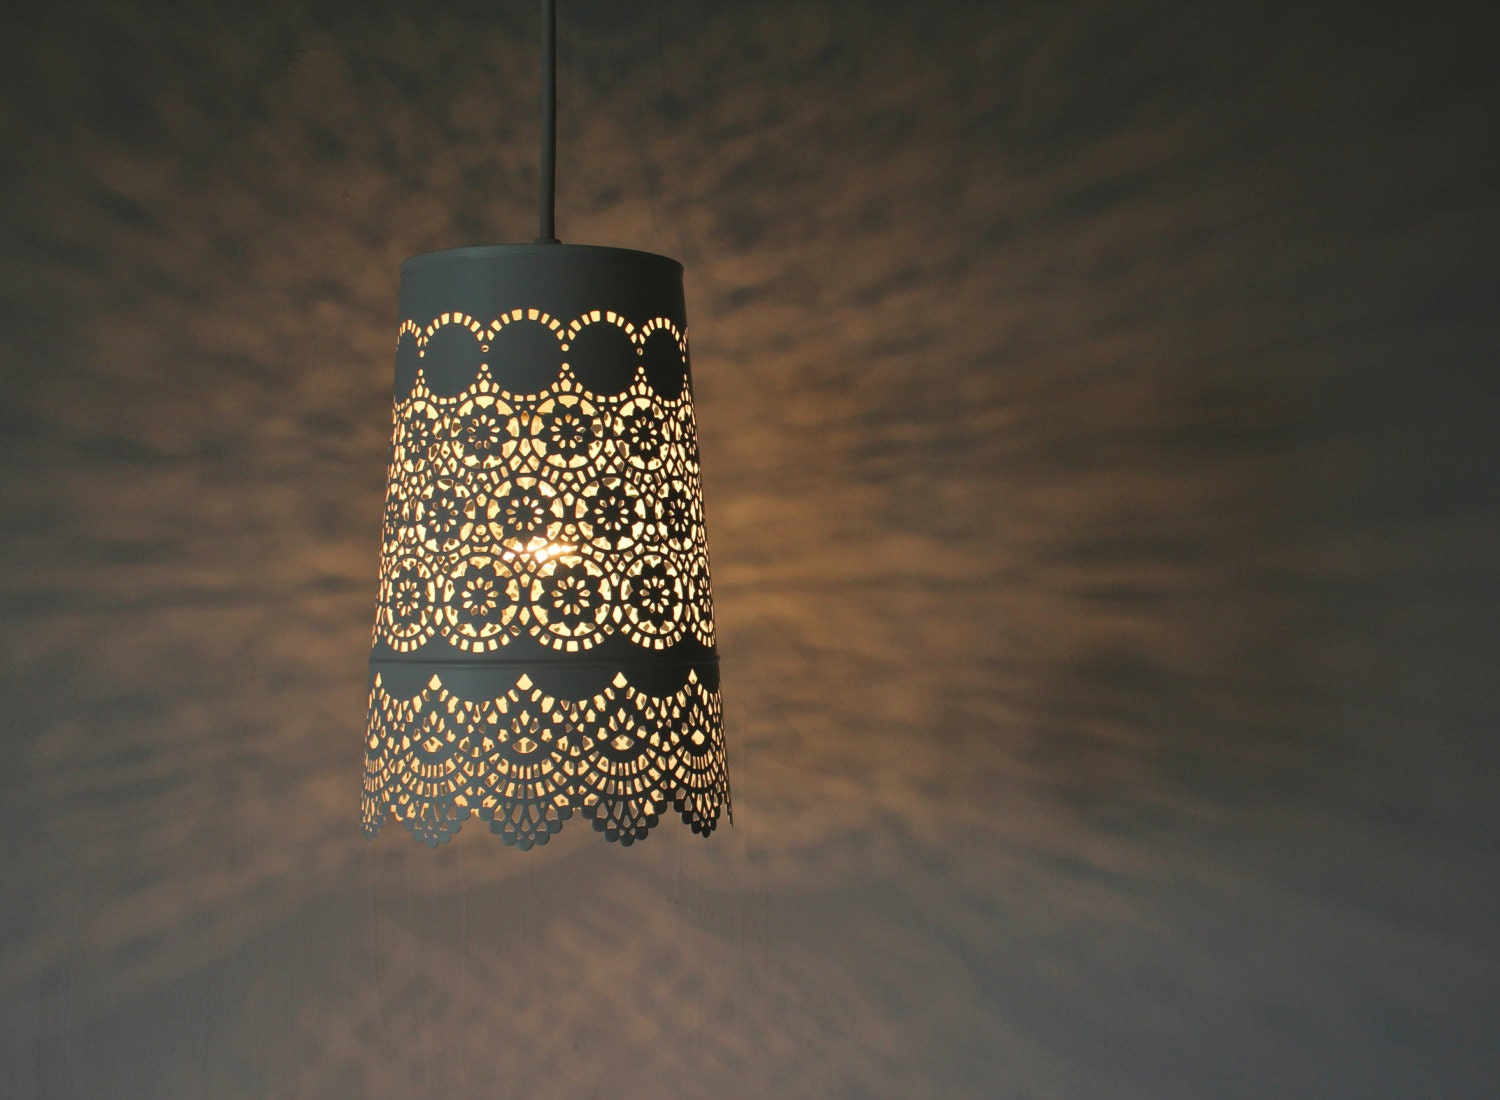 Queen Anne's Lace - UpCycled Hanging Pendant Lamp - White Mesh Lace Metal Garden Planter Lighting Fixture - BootsNGus Lamp Design - BootsNGus